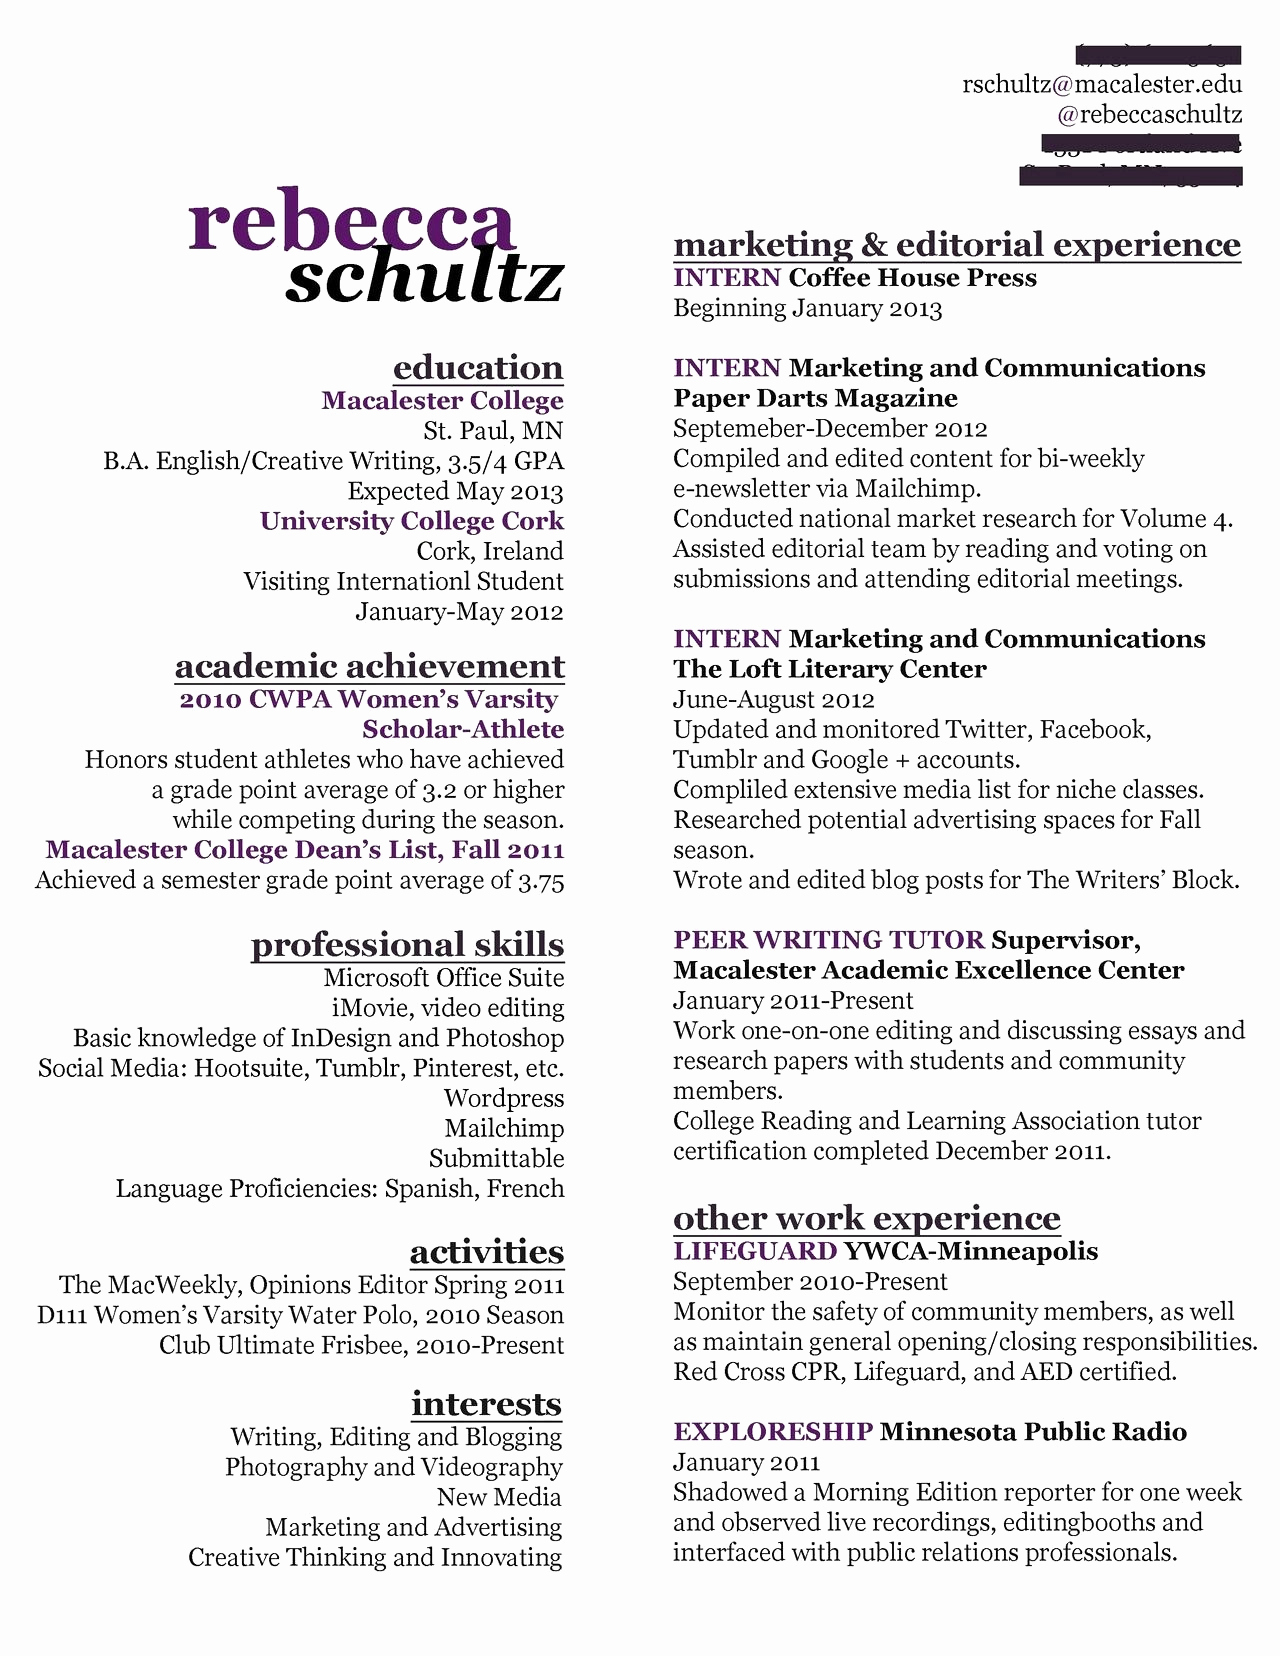 Lifeguard Responsibilities for Resume - Resumes for Public Relations 25 Fresh Resume Writing Panies – Free